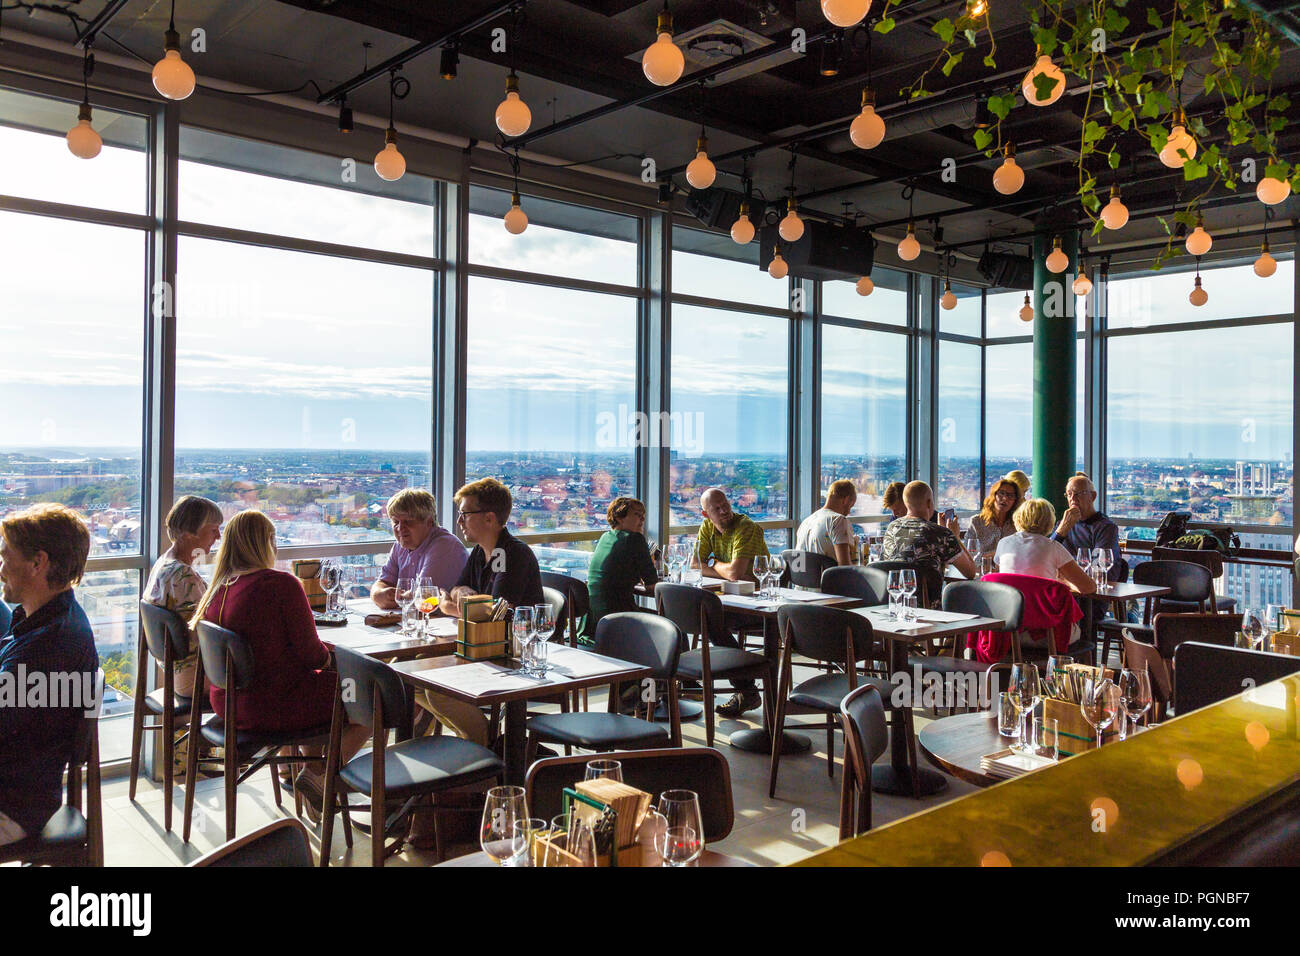 Interior Of Restaurant And Bar Himlen With Stockholm Skyline In The Background Sweden Stock Photo Alamy